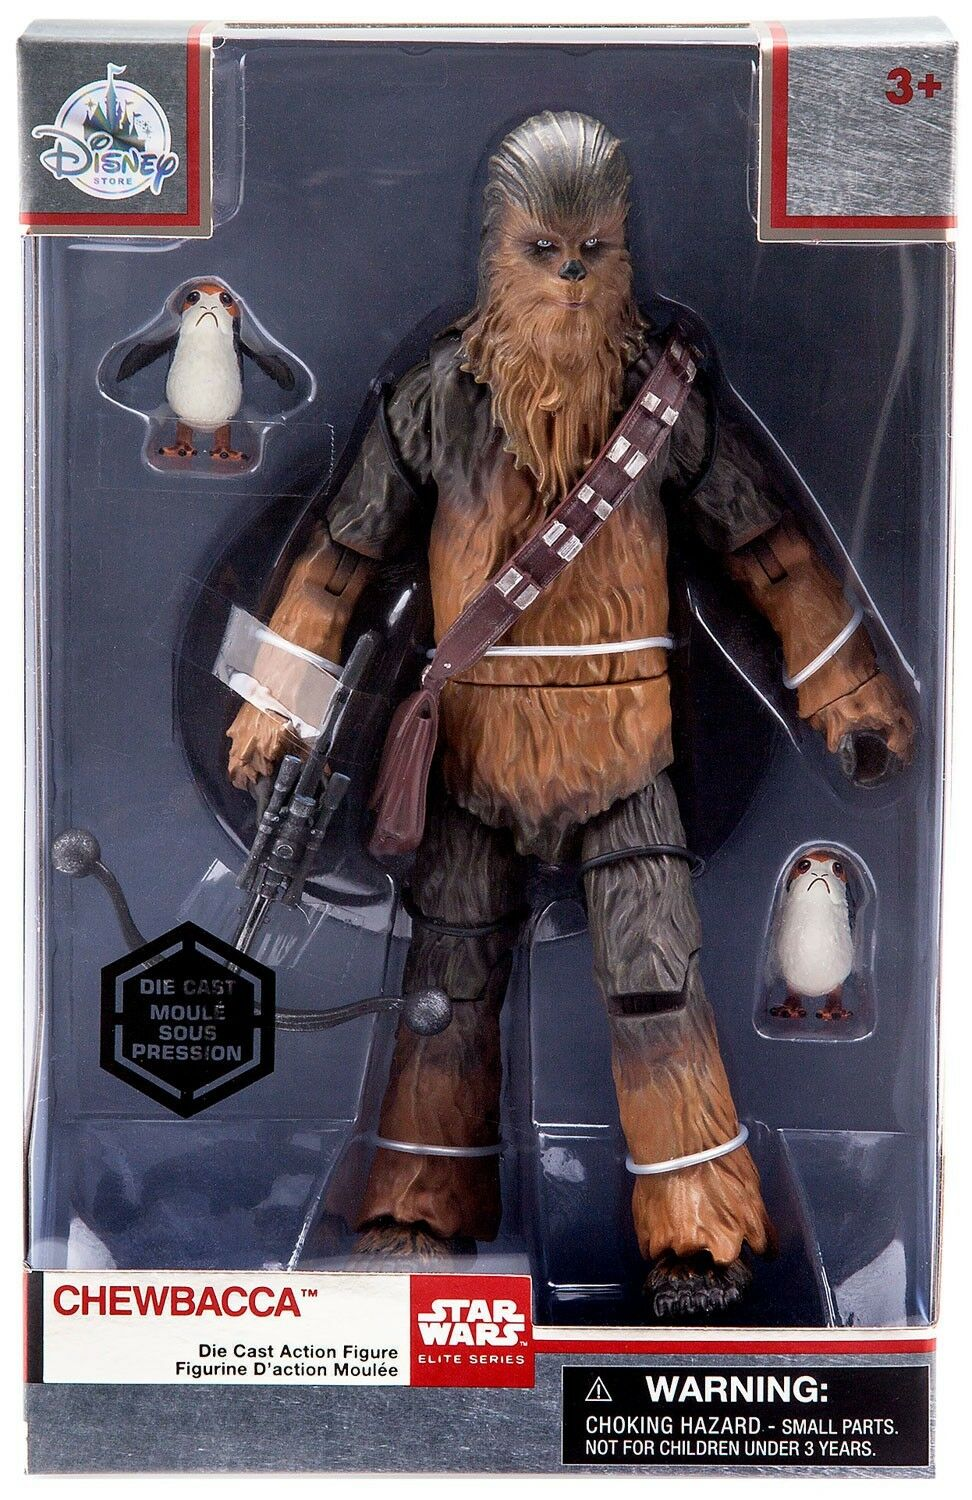 Star Wars Elite Series Chewbacca Exclusive 8-Inch Diecast Figure [with Porgs]